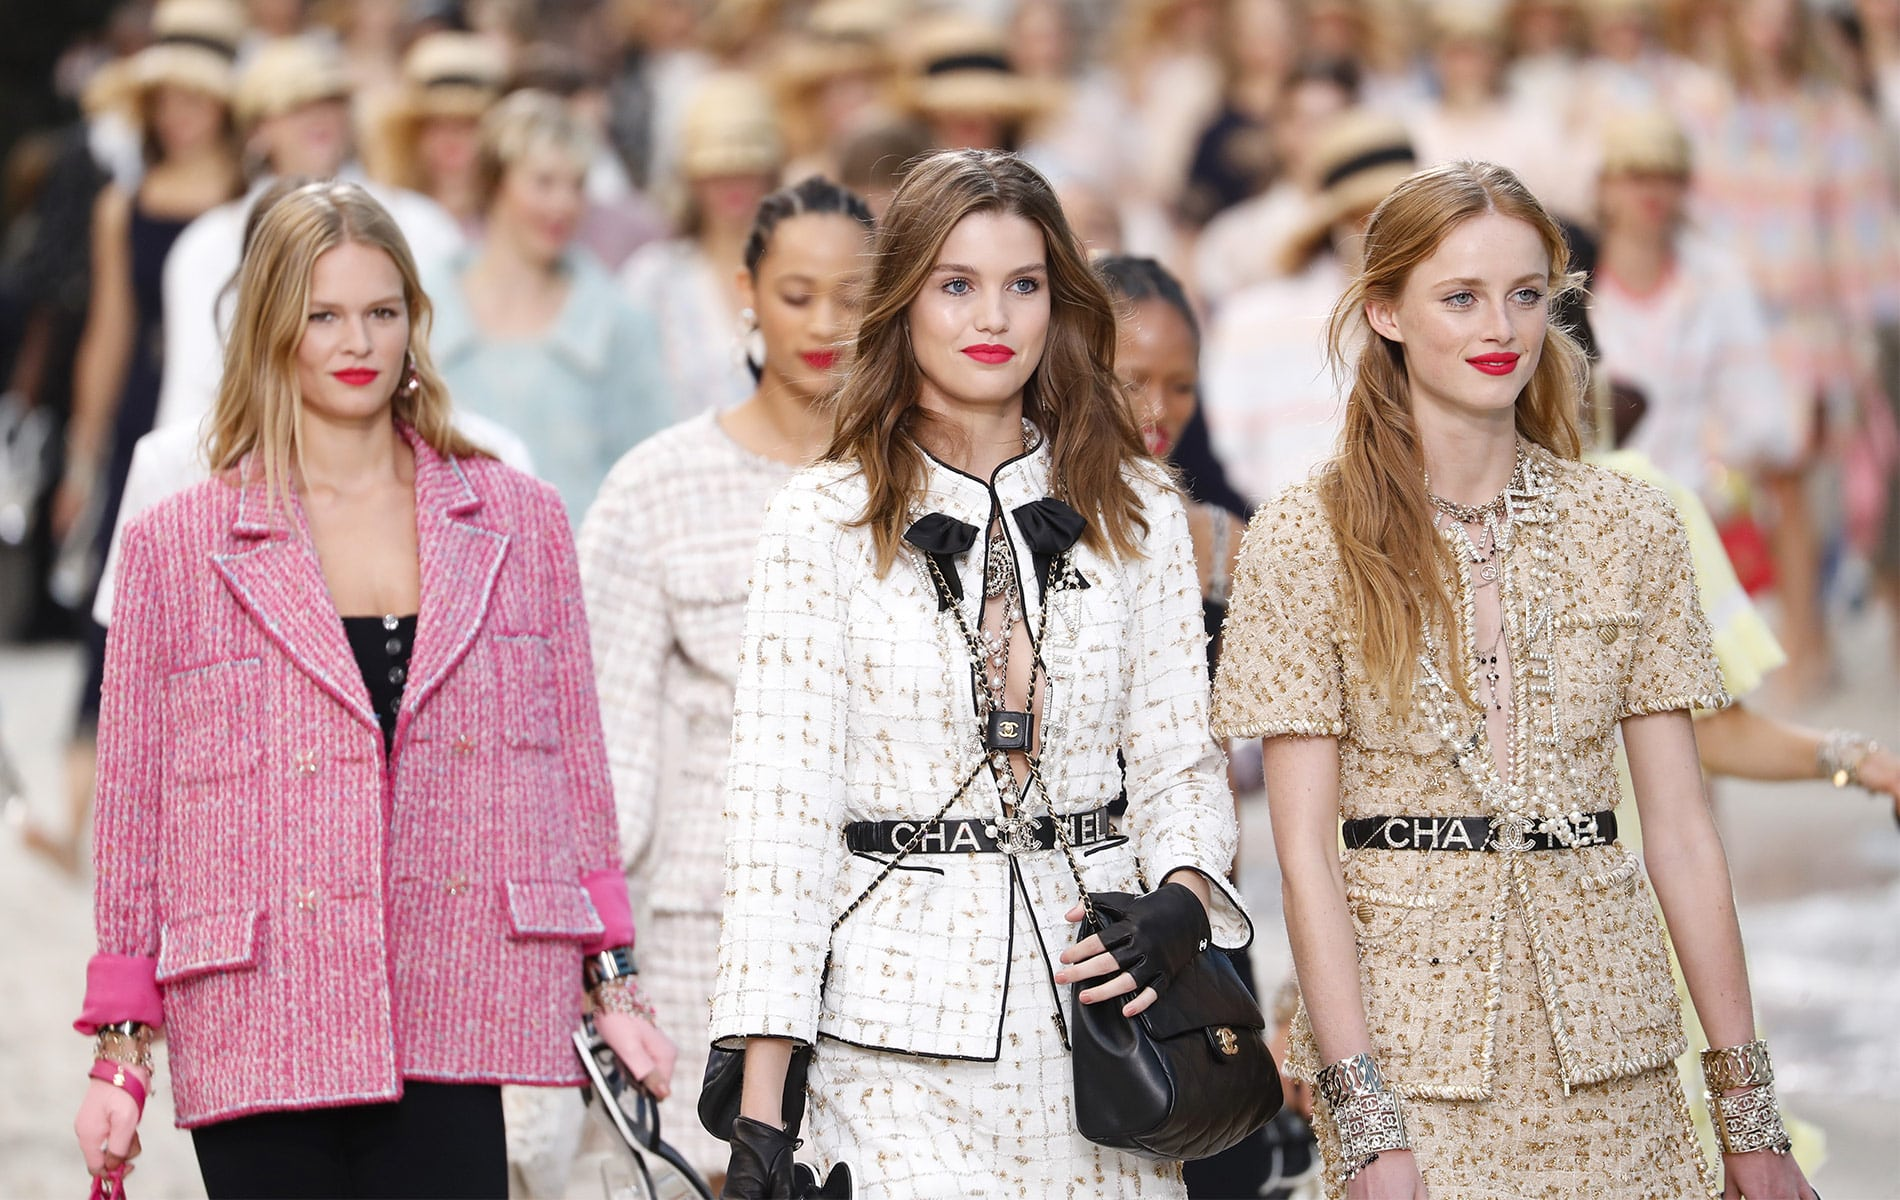 Models walk the runway finale during the Chanel show as part of the Paris Fashion Week Womenswear Spring/Summer 2019 on October 2, 2018 in Paris, France